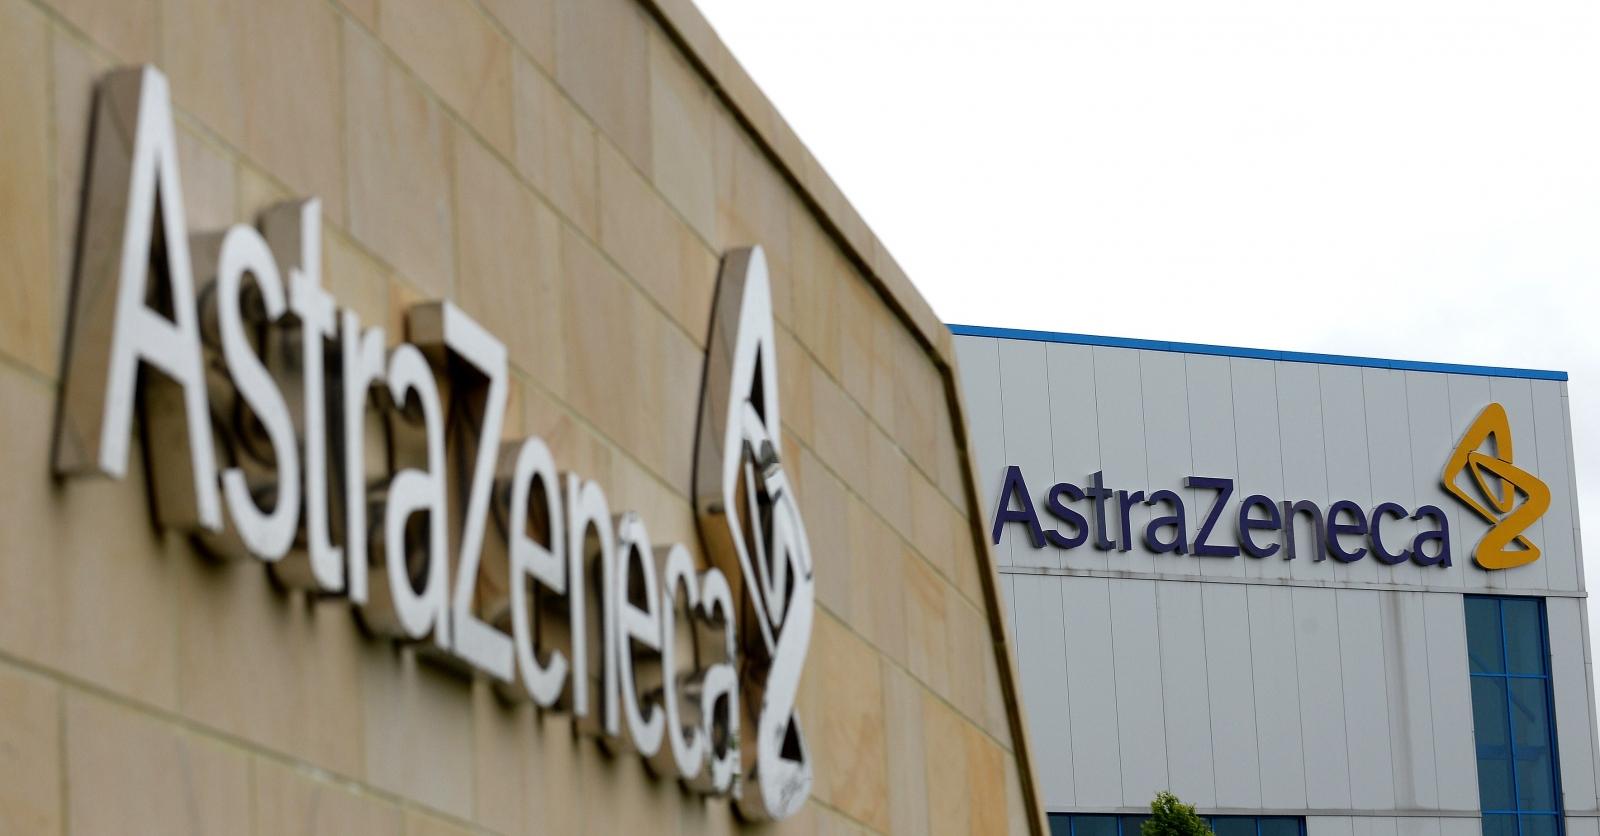 AstraZeneca Q1 upbeat on cancer drugs despite Q1 sales drop